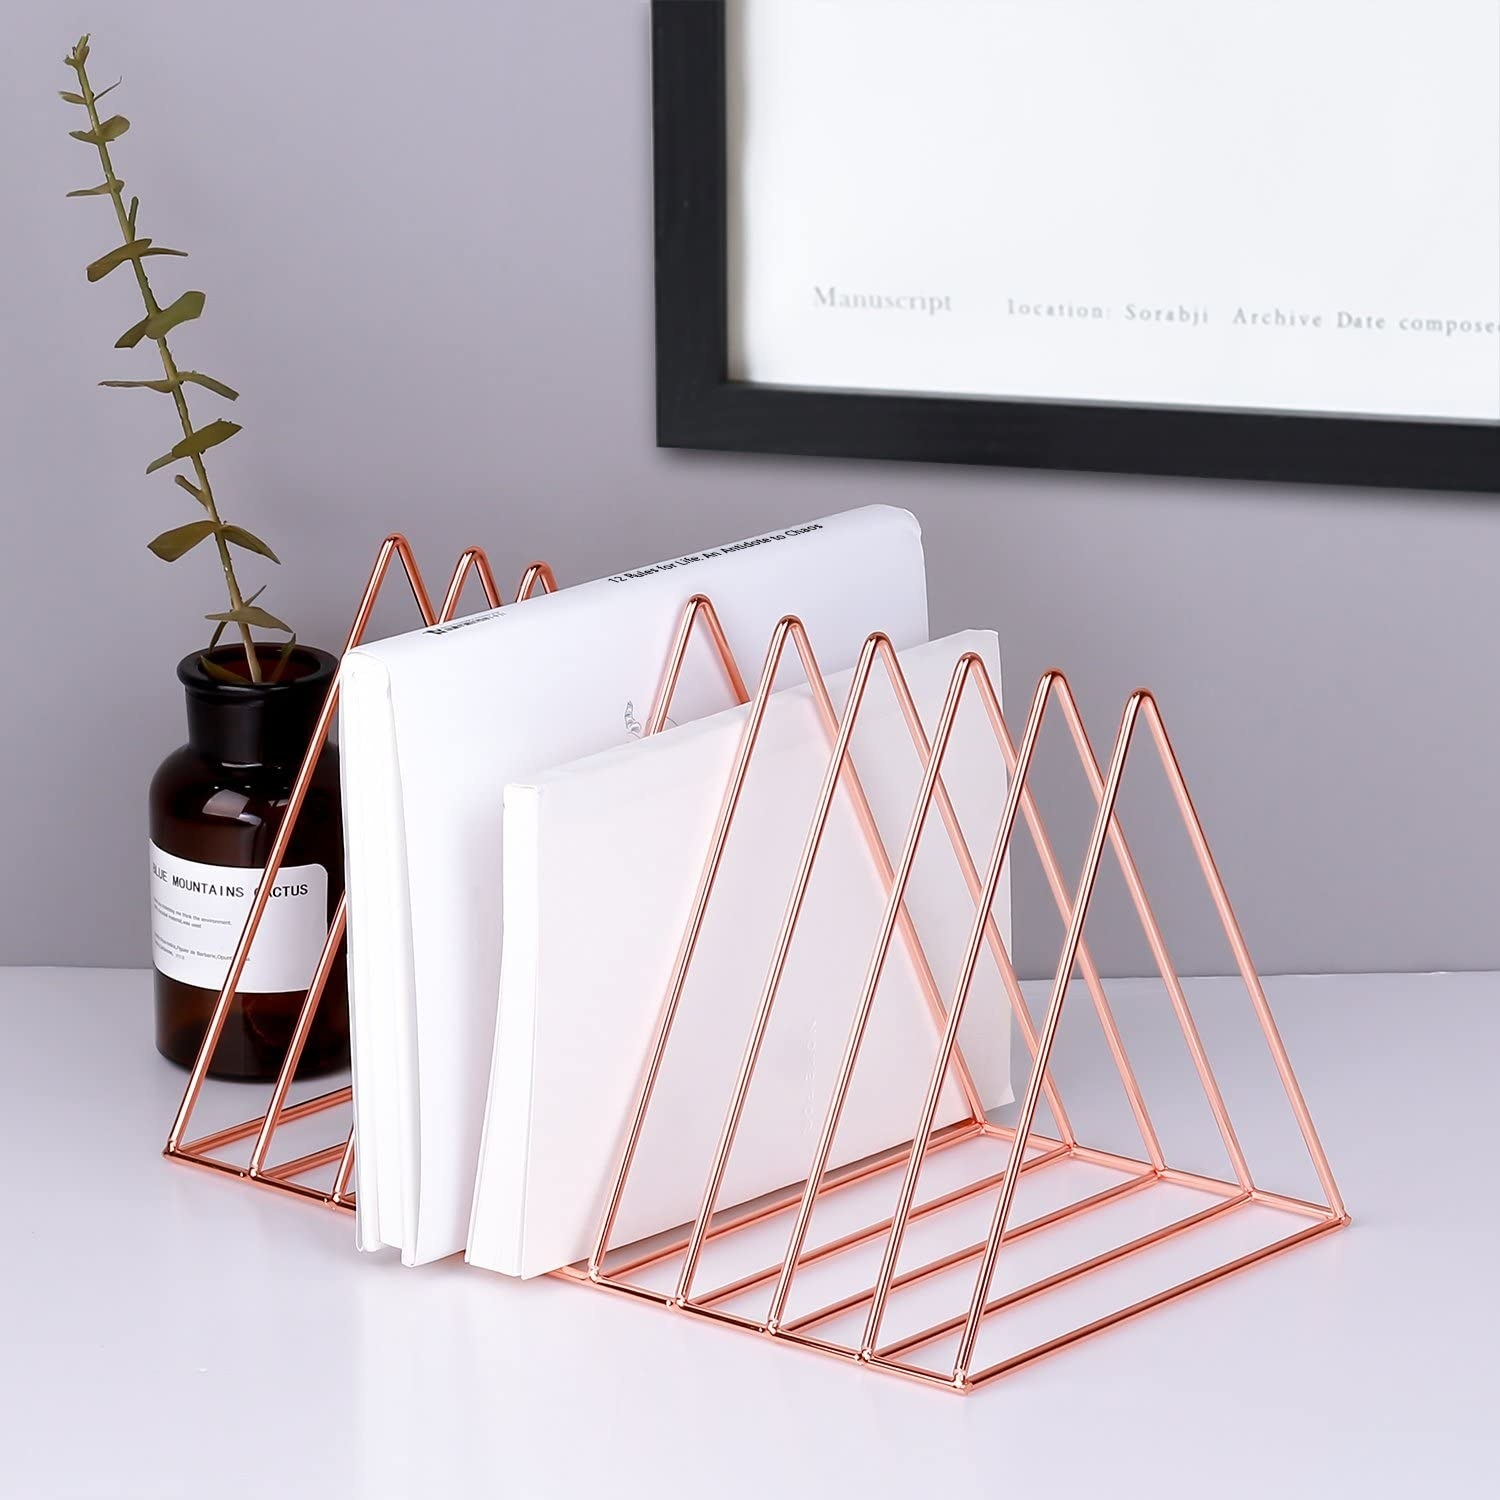 A triangular magazine holder with books in it is on a flat surface